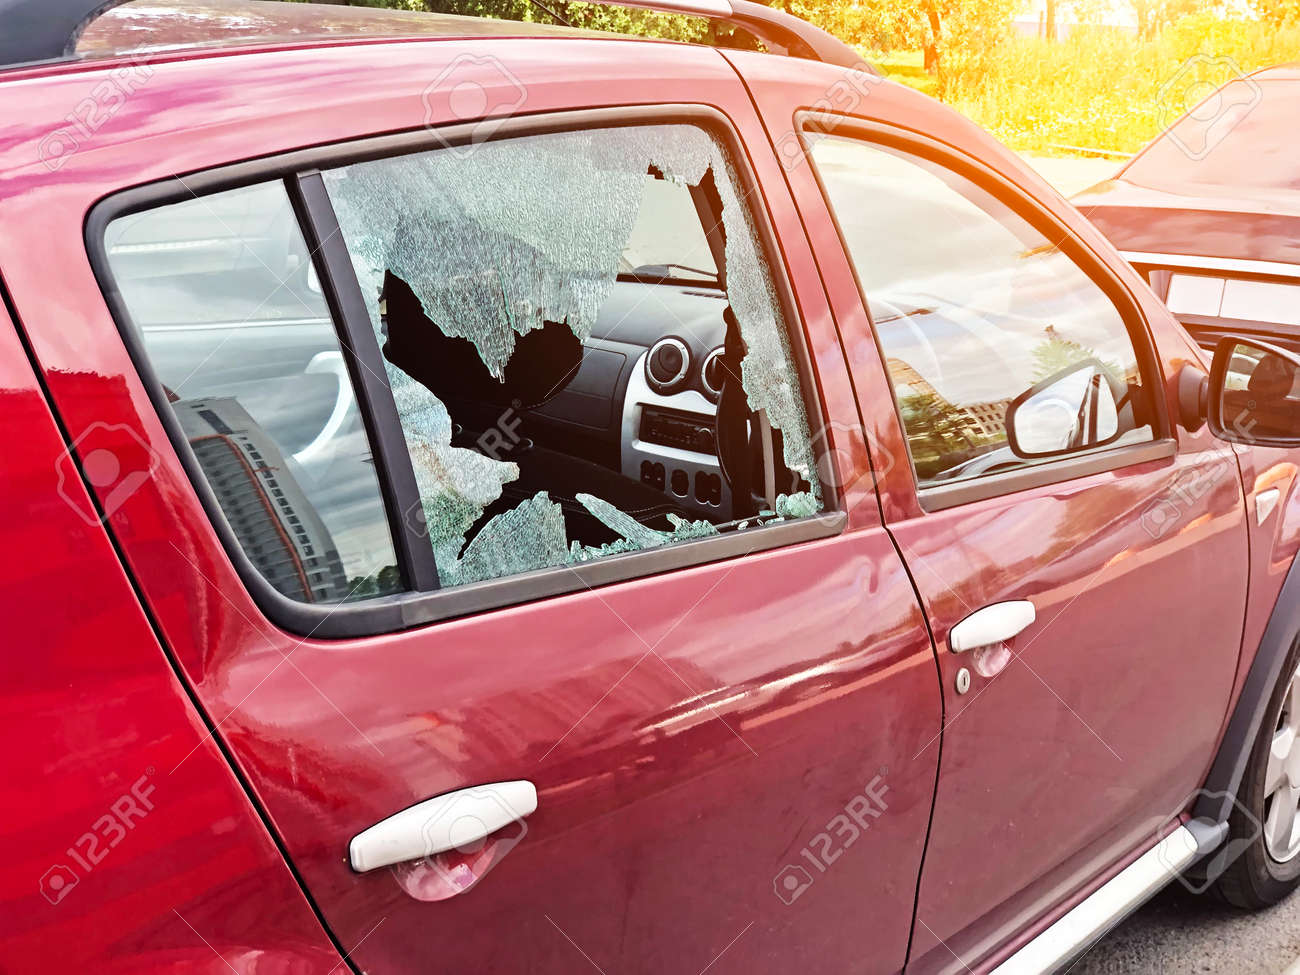 Broken glass on the passenger door of a passenger car parked. The concept of crime of car theft, theft of valuables - 126756790